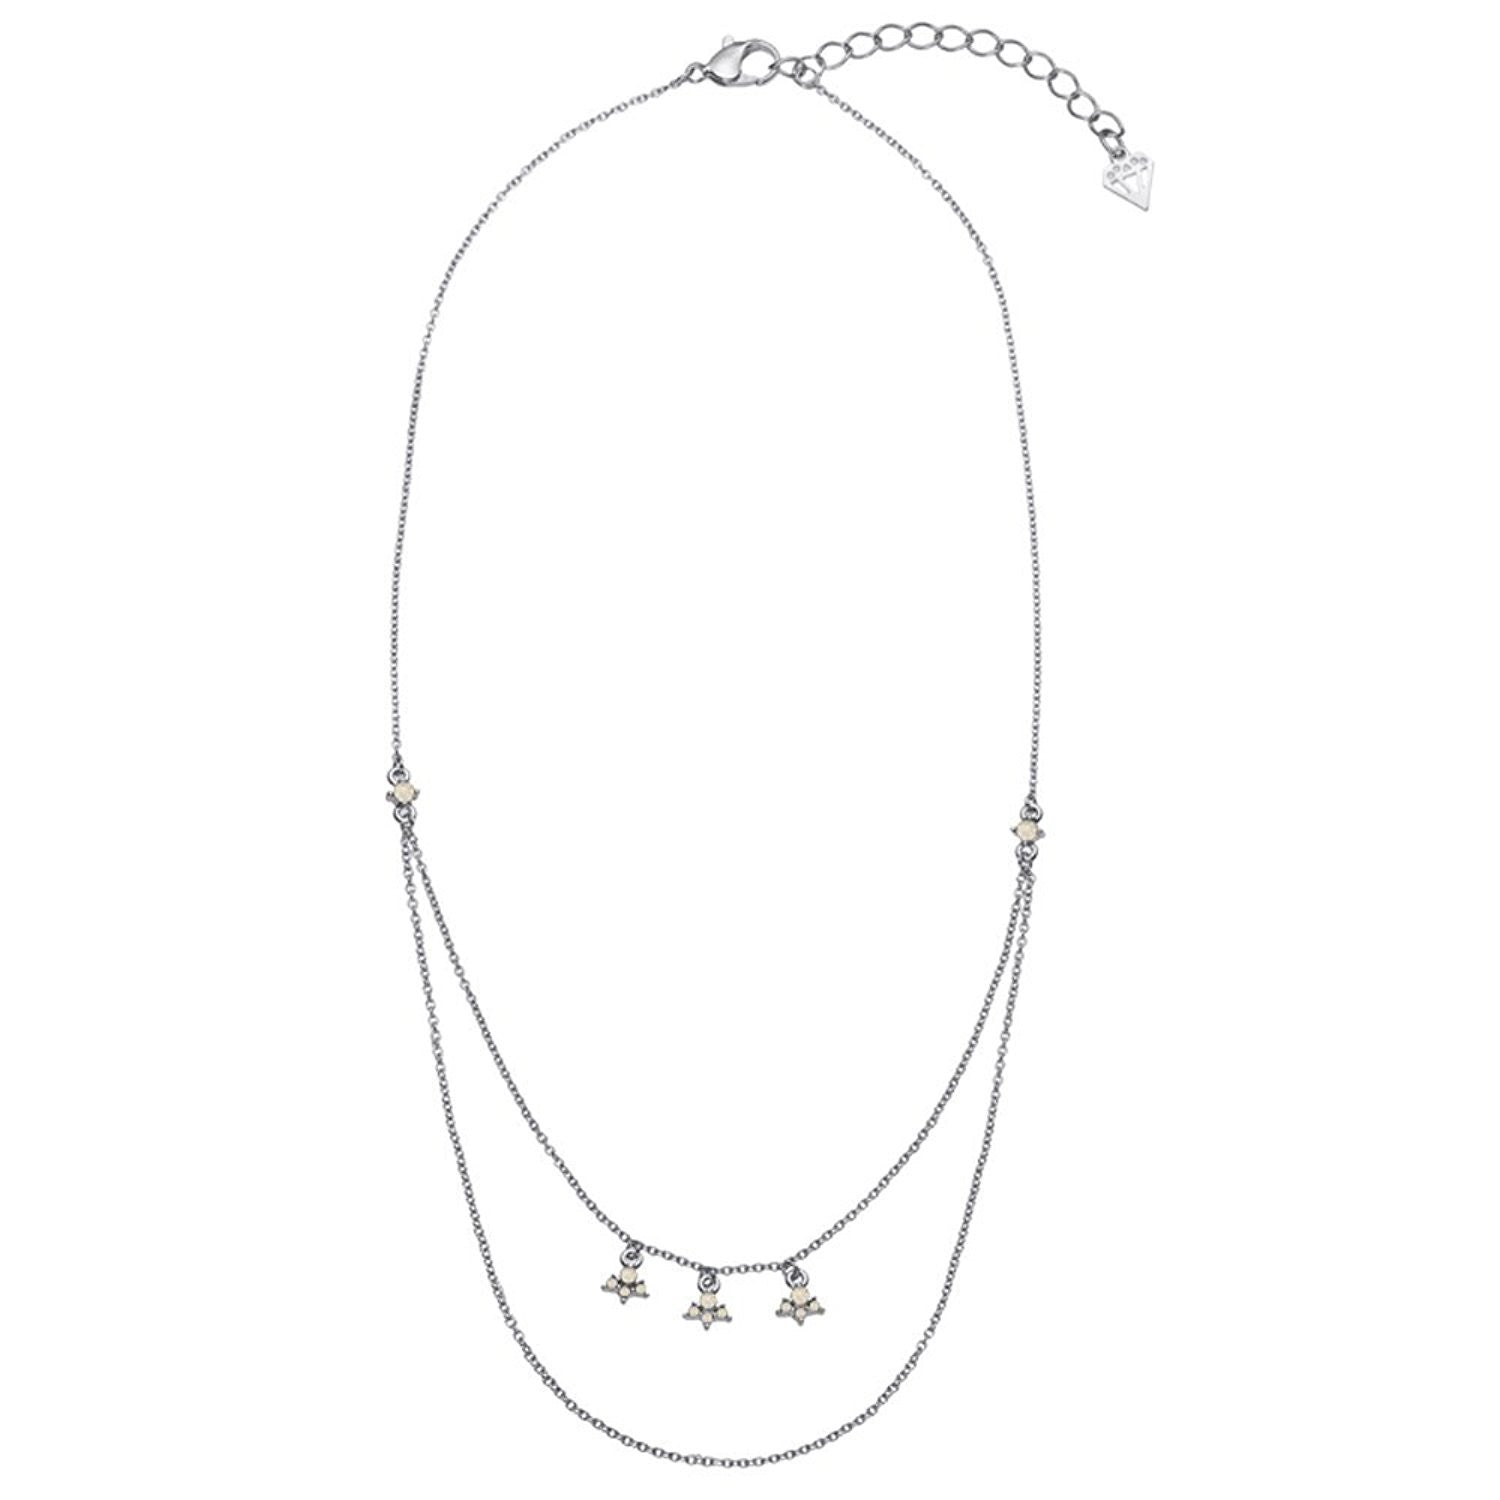 Drip Drop 2 Row Dainty Layered Necklace